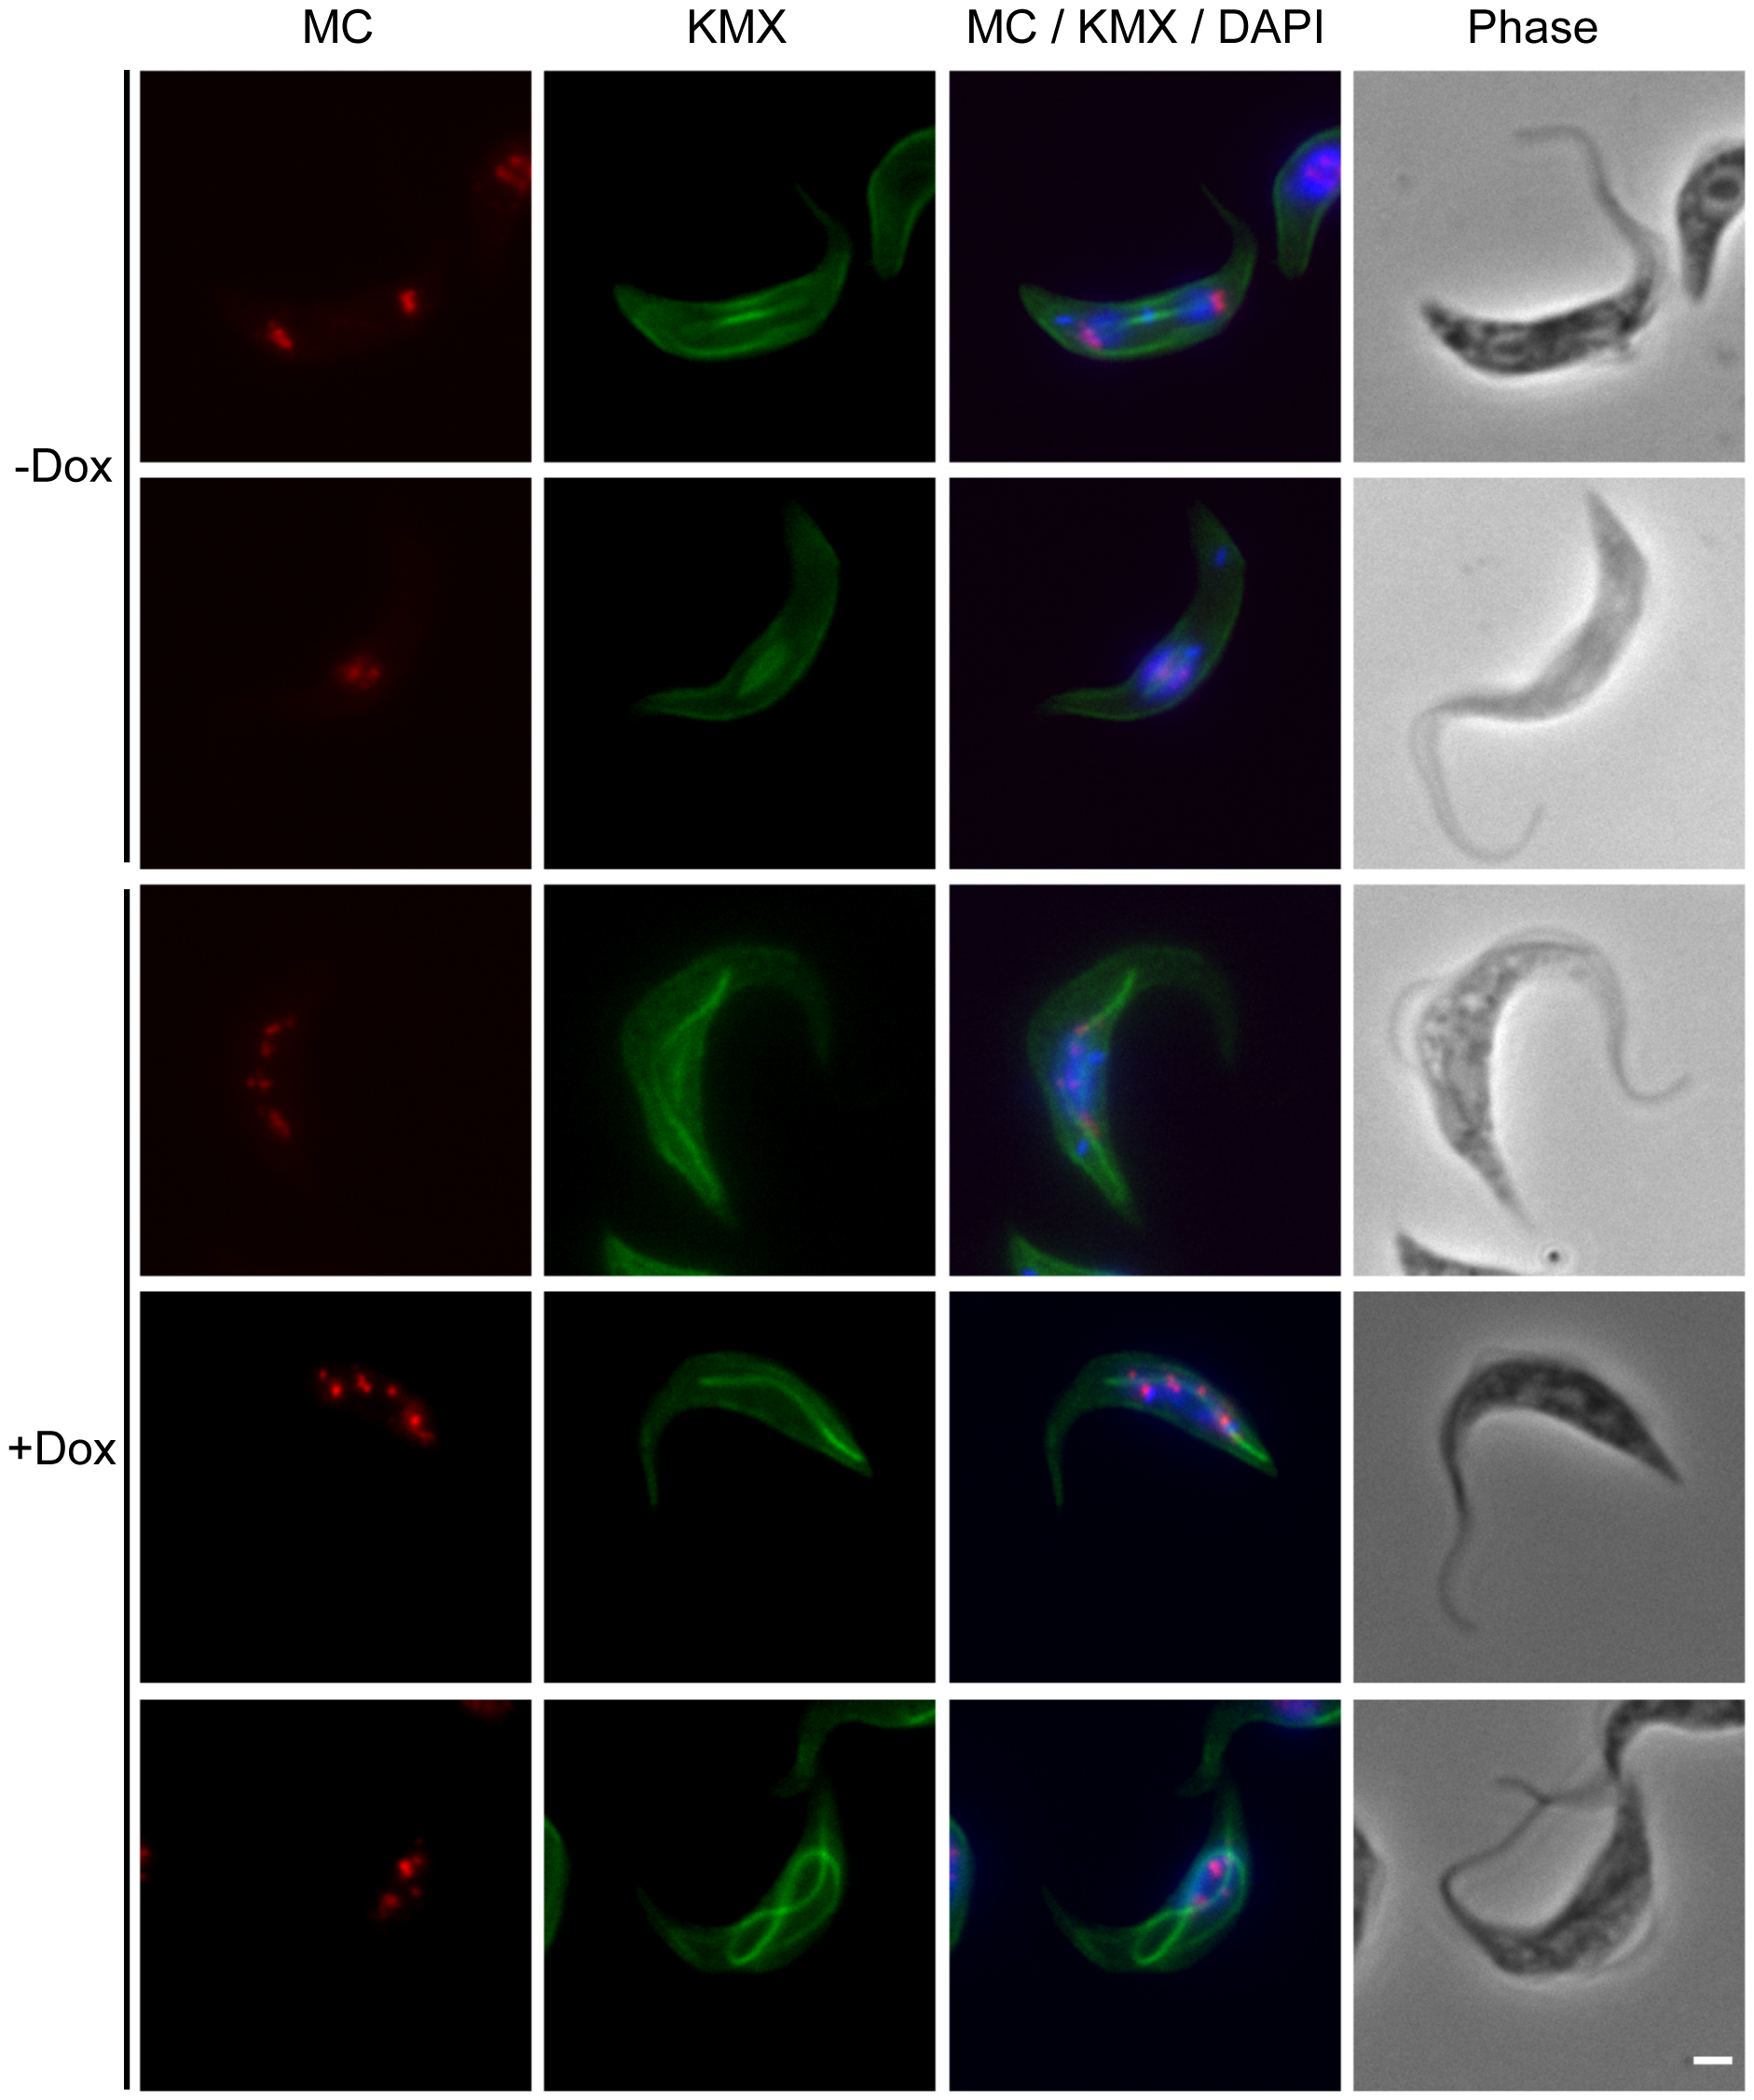 TbKif13-1 depletion results in chromosome segregation defects.